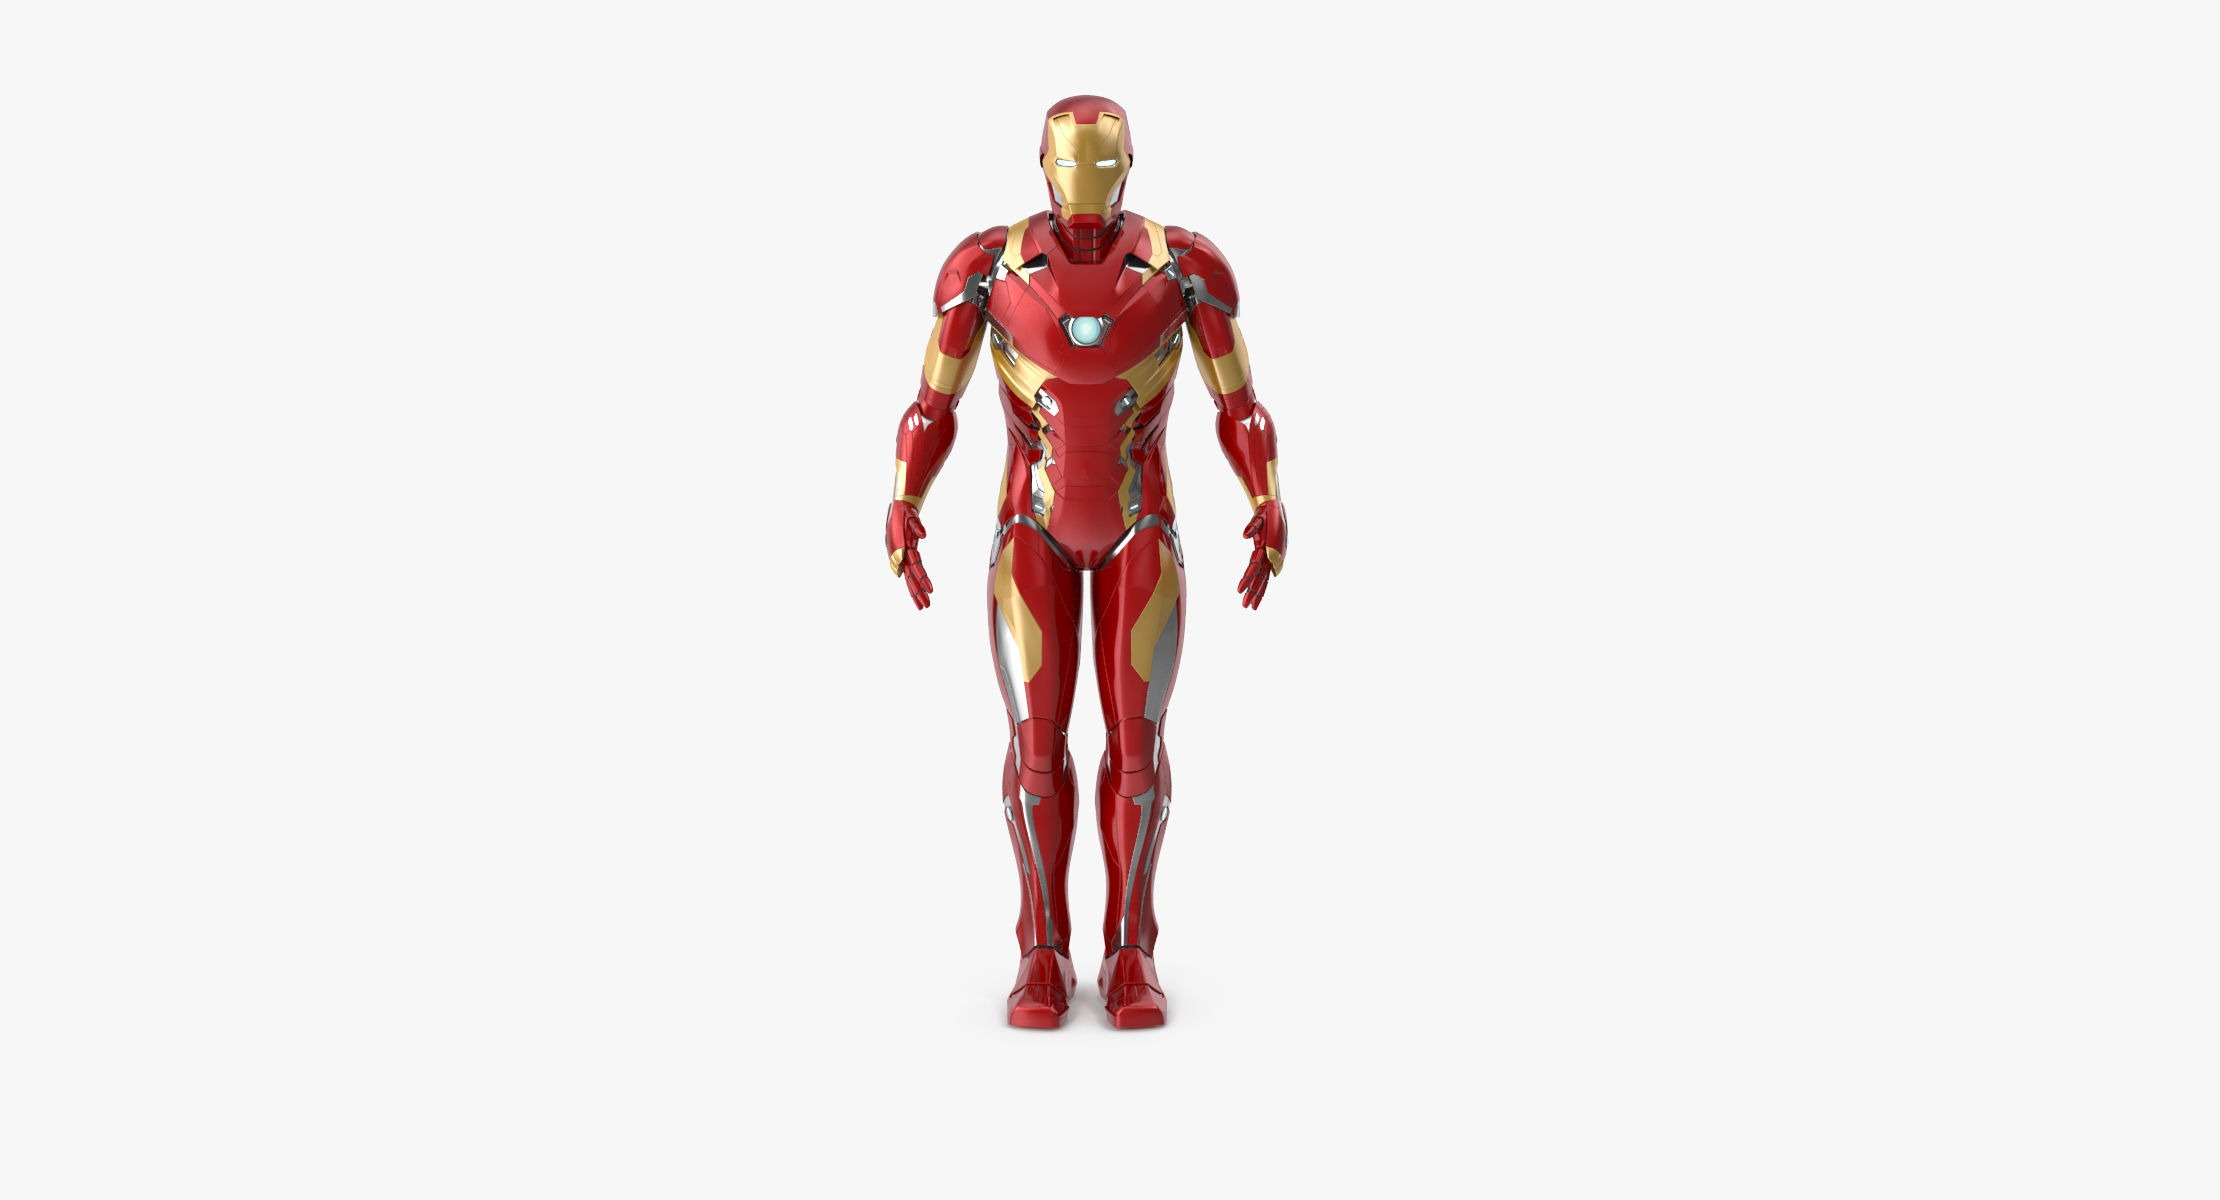 Iron Man Mark 46 - Rigged - reel 1